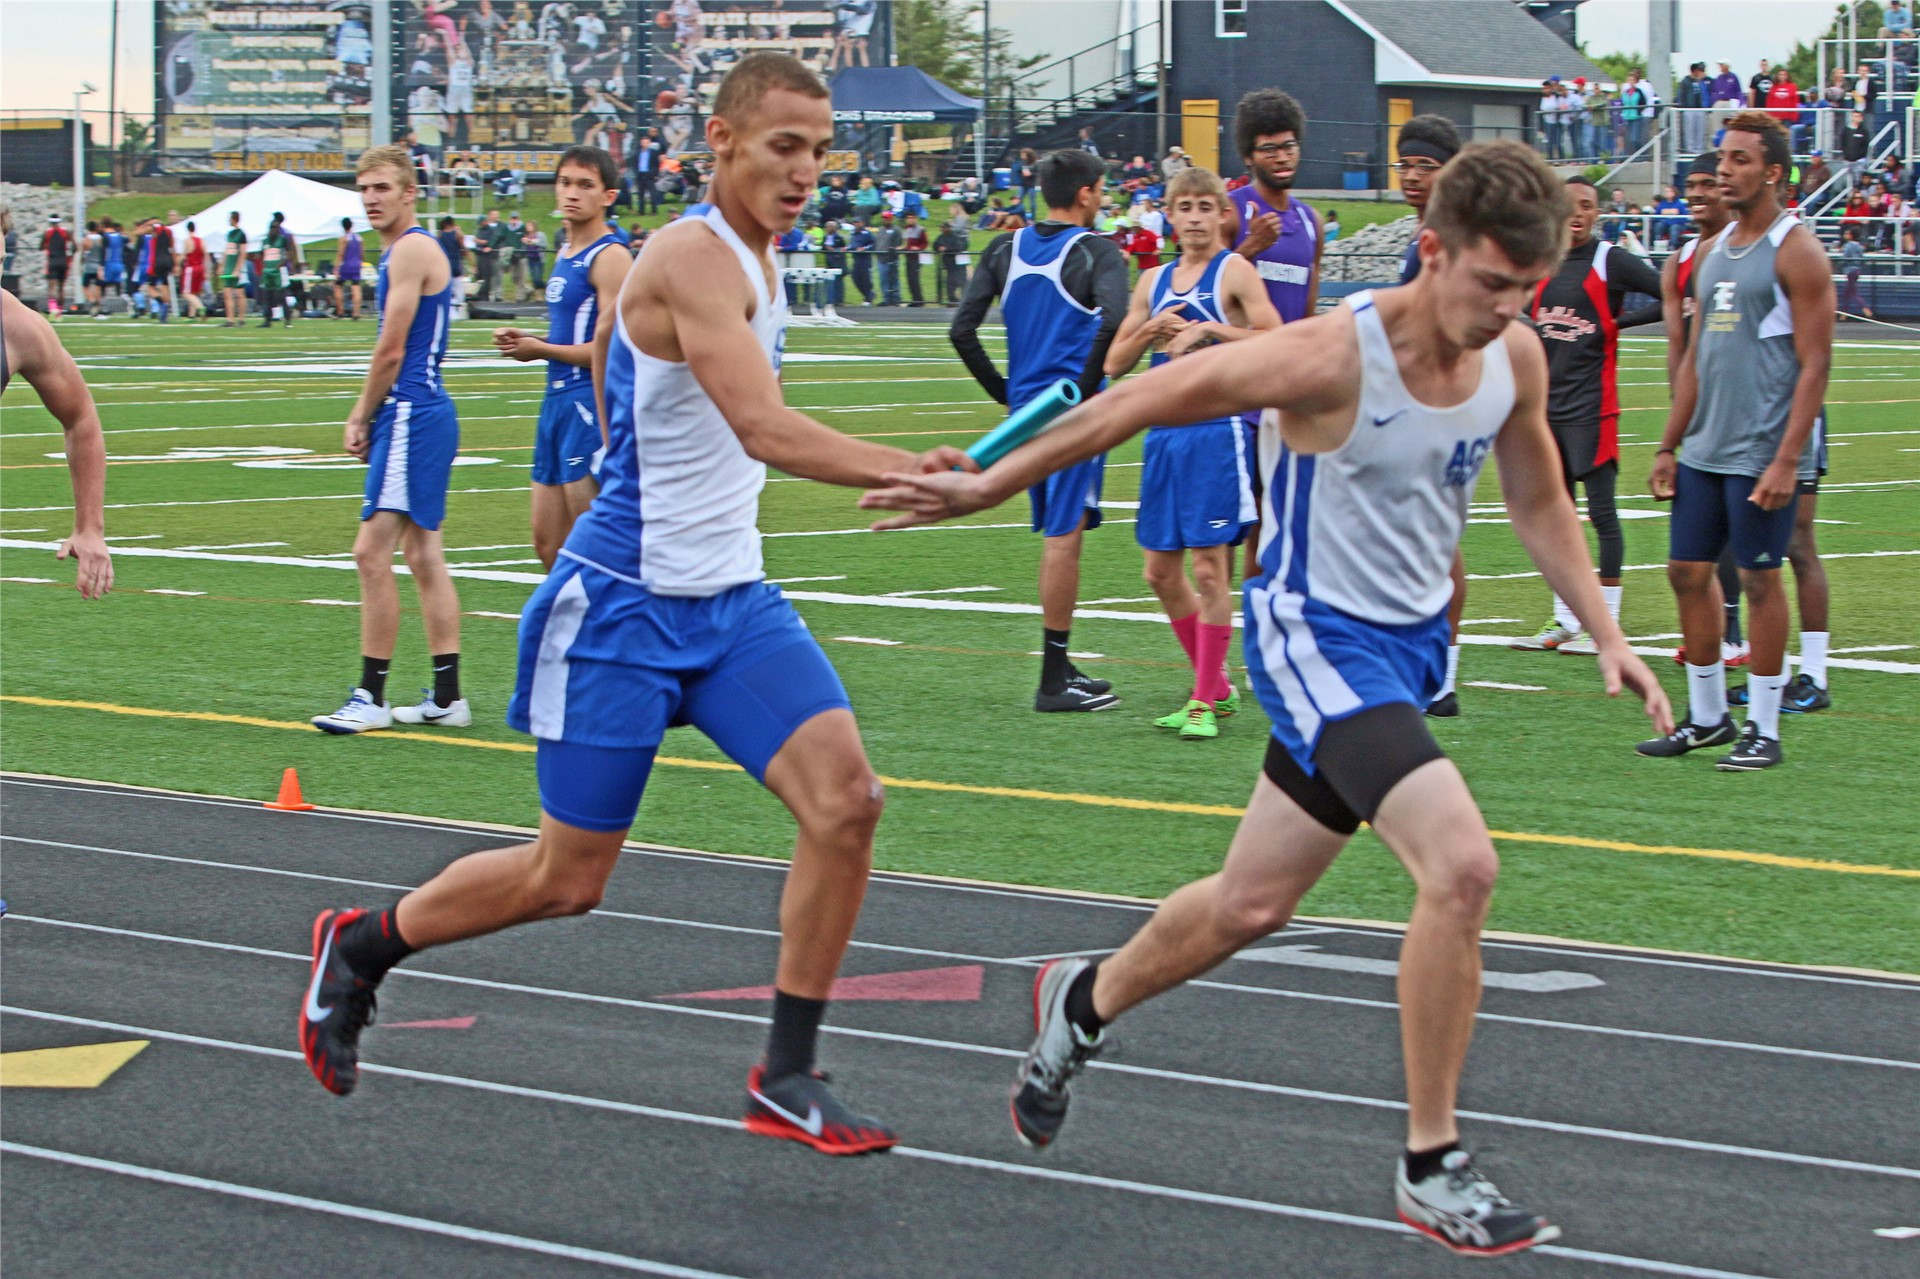 Jacob Lightfoot with handoff to Brian Huff.